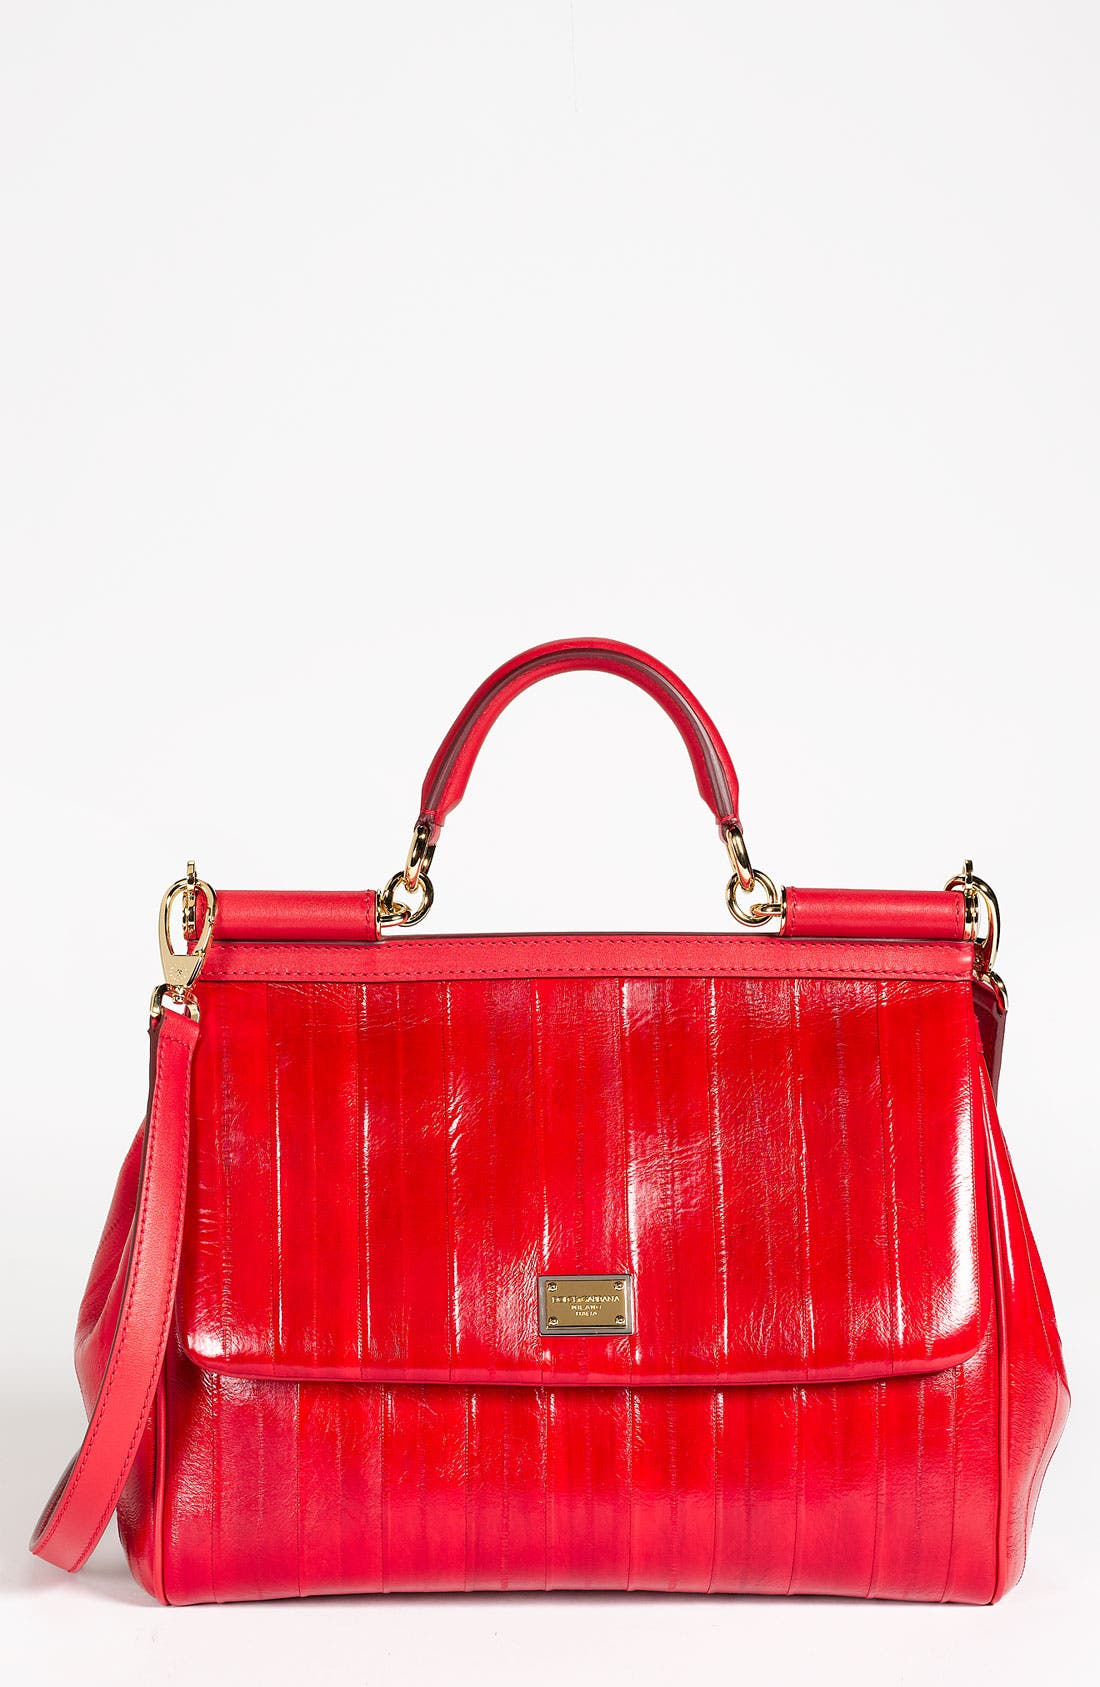 Main Image - Dolce&Gabbana 'Miss Sicily' Eel & Leather Satchel